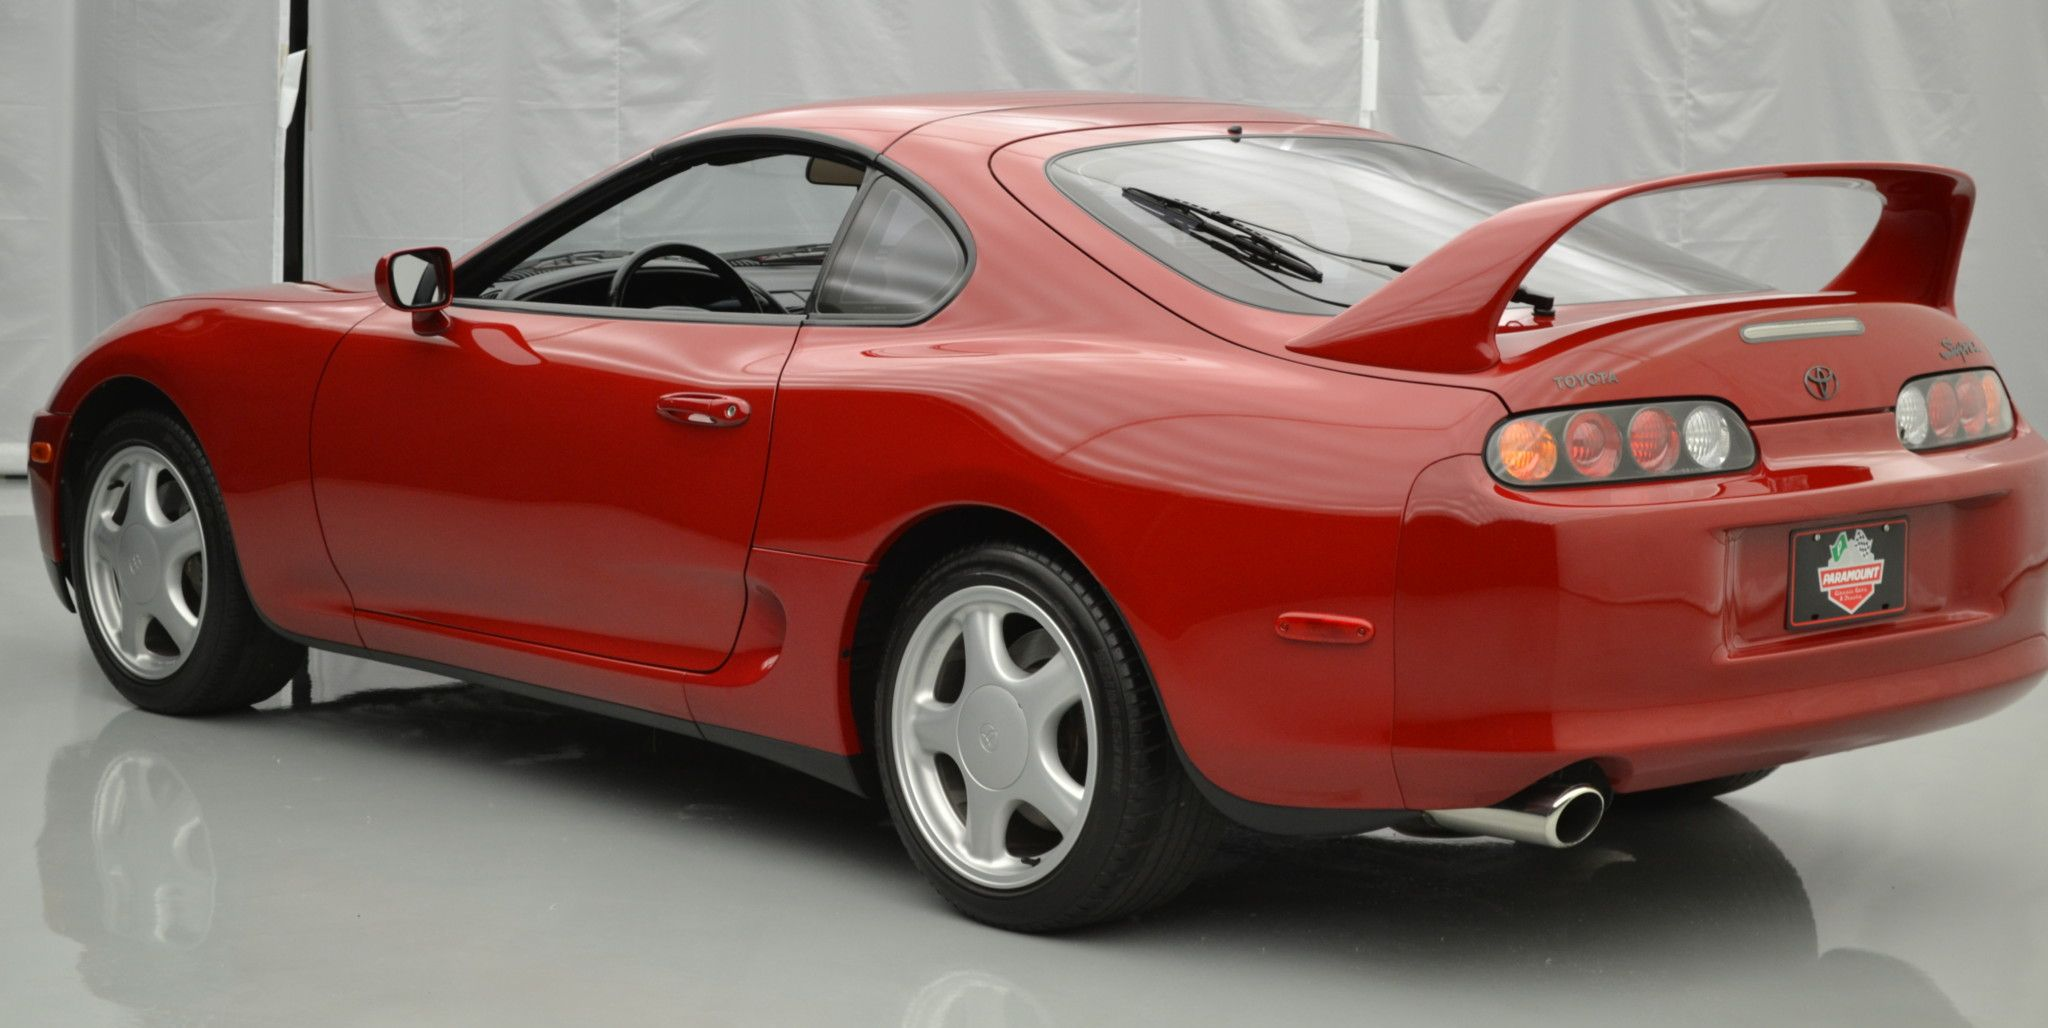 That $121,000 Supra Is Now Listed for Sale for $500,000, But You Can't Really Buy It